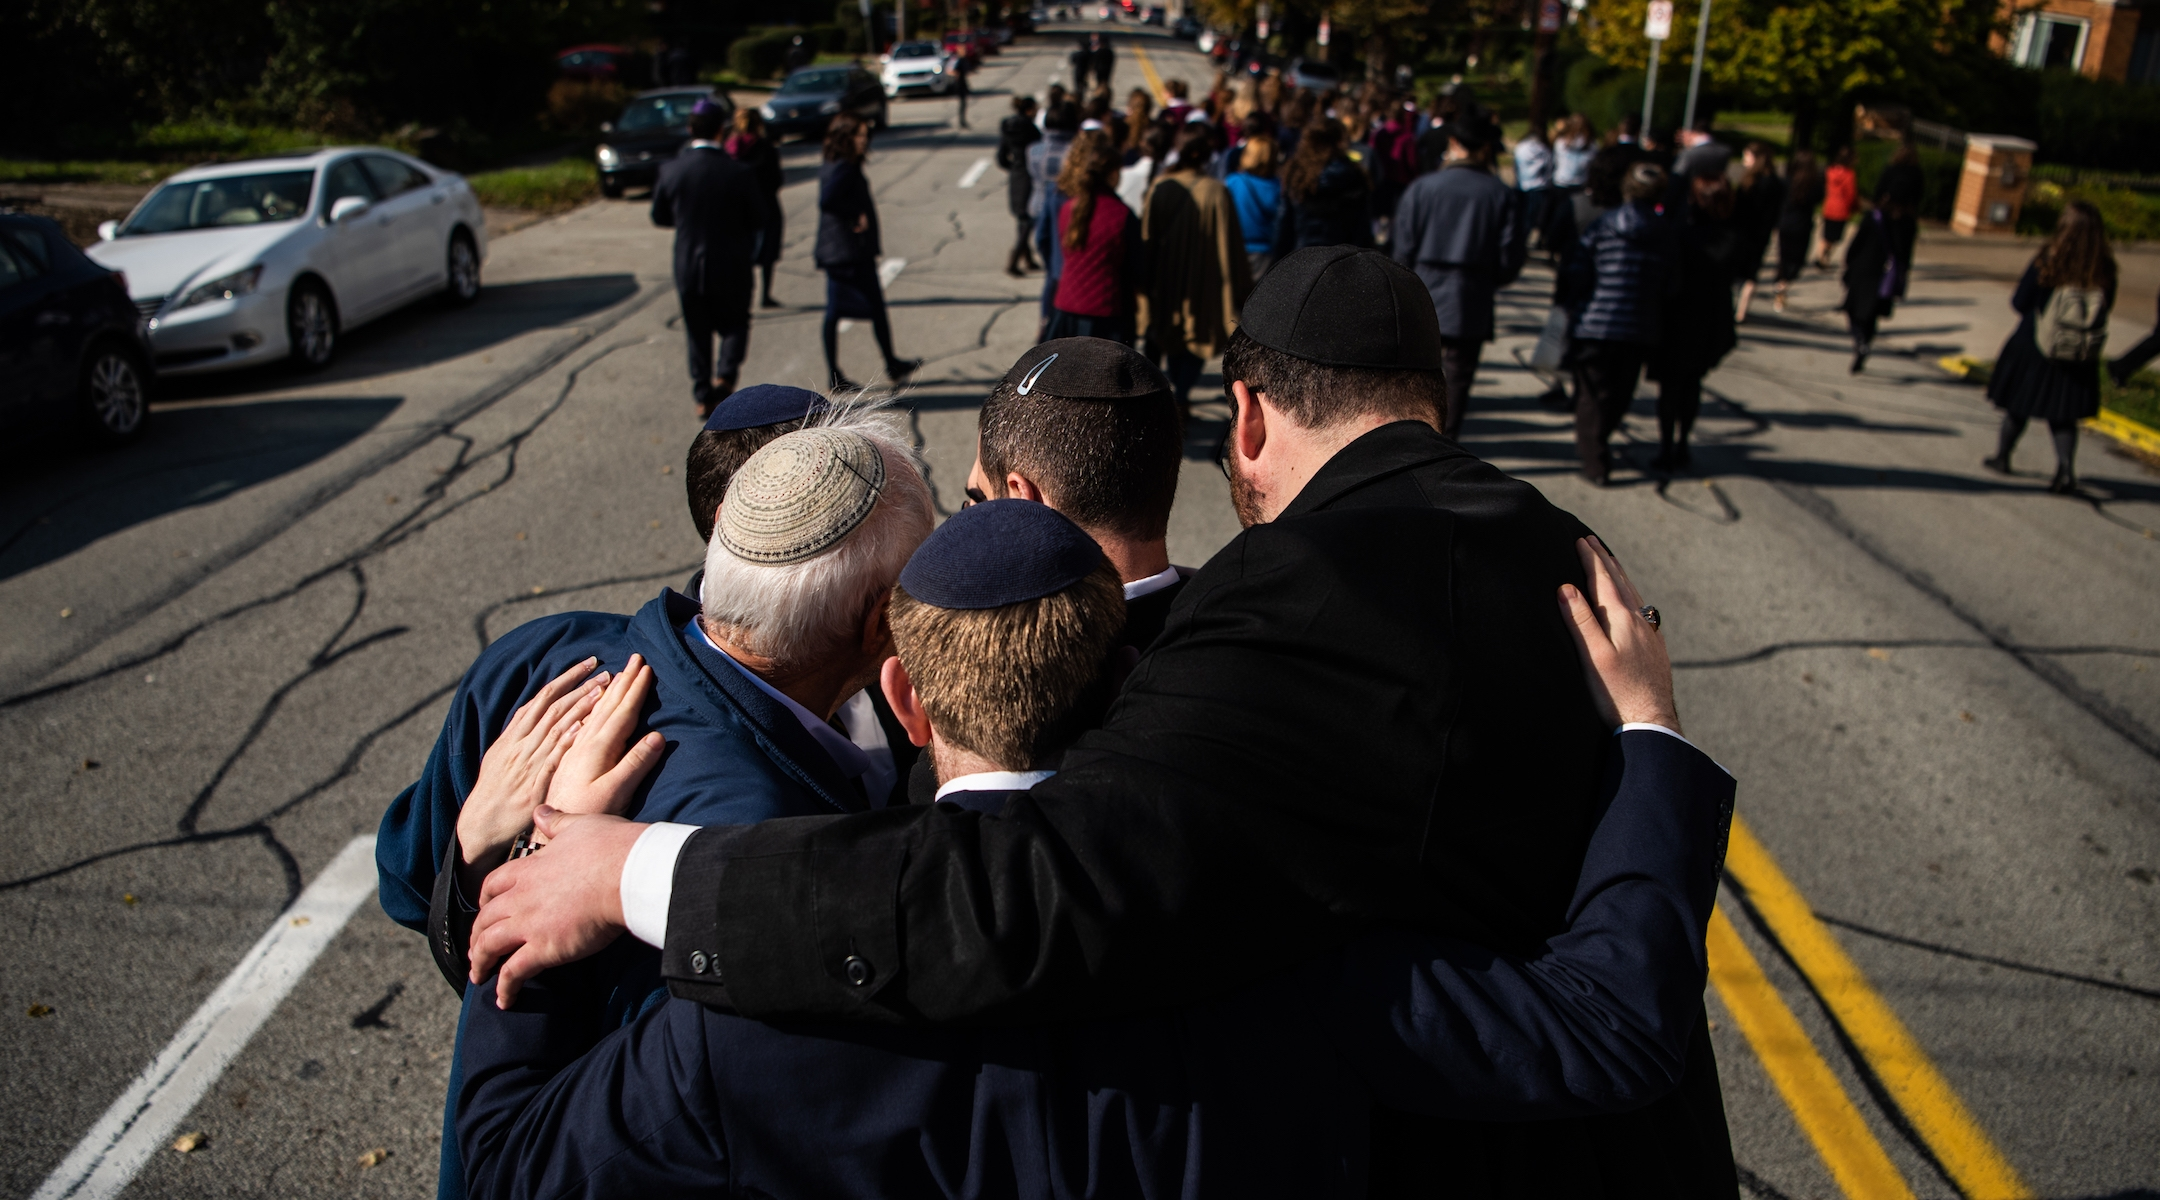 Mourners embrace during a processional outside of Congregation Beth Shalom in Pittsburgh for the funeral of Joyce Fienberg, who was killed at the mass shooting at the Tree of Life synagogue shooting, Oct. 31, 2018. (Salwan Georges/The Washington Post via Getty Images)